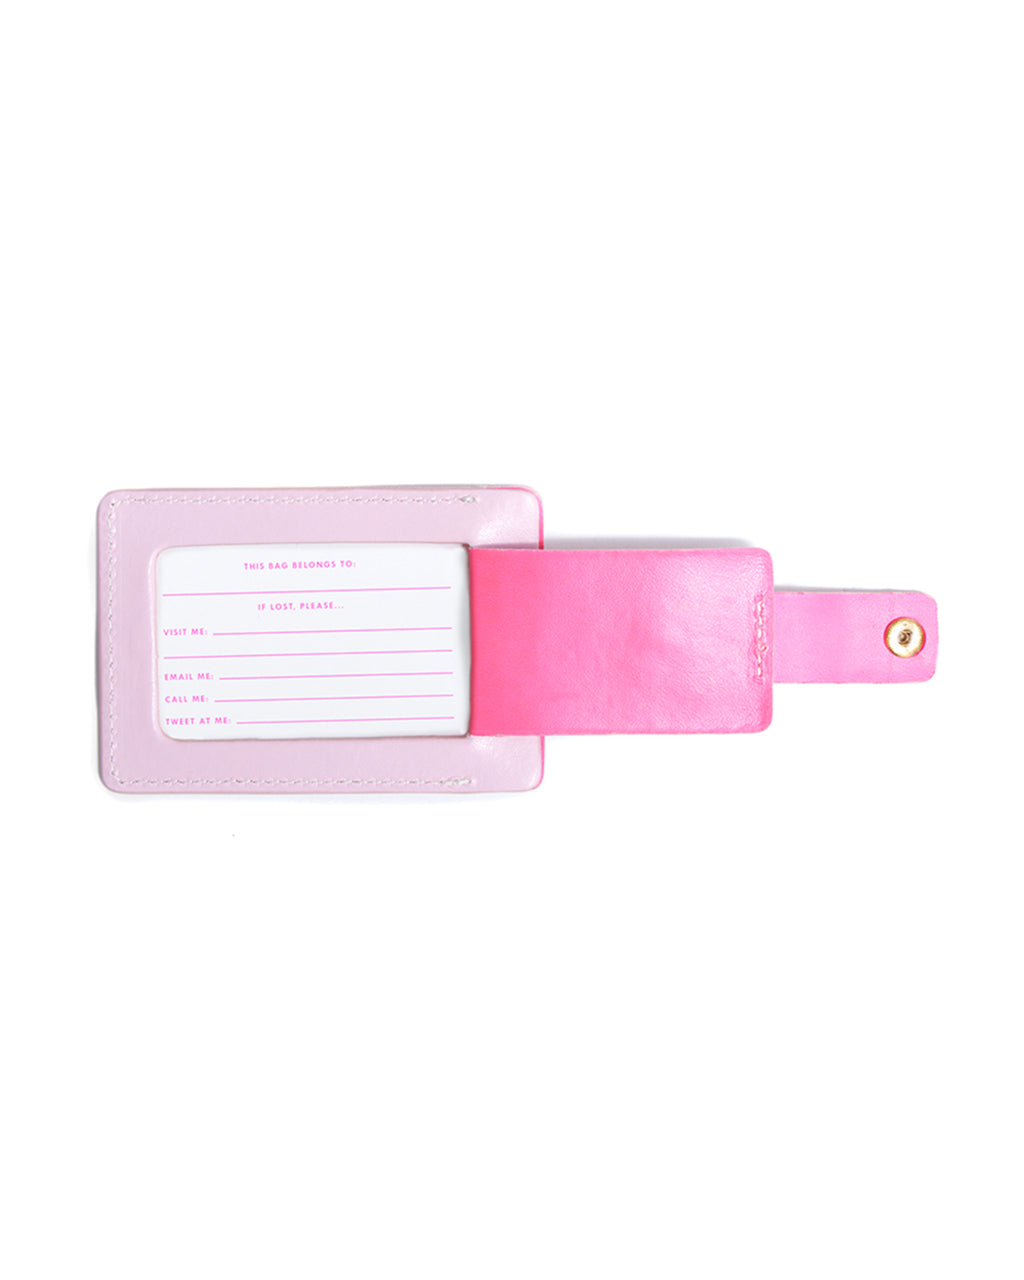 Includes a pink-printed insert for contact info.